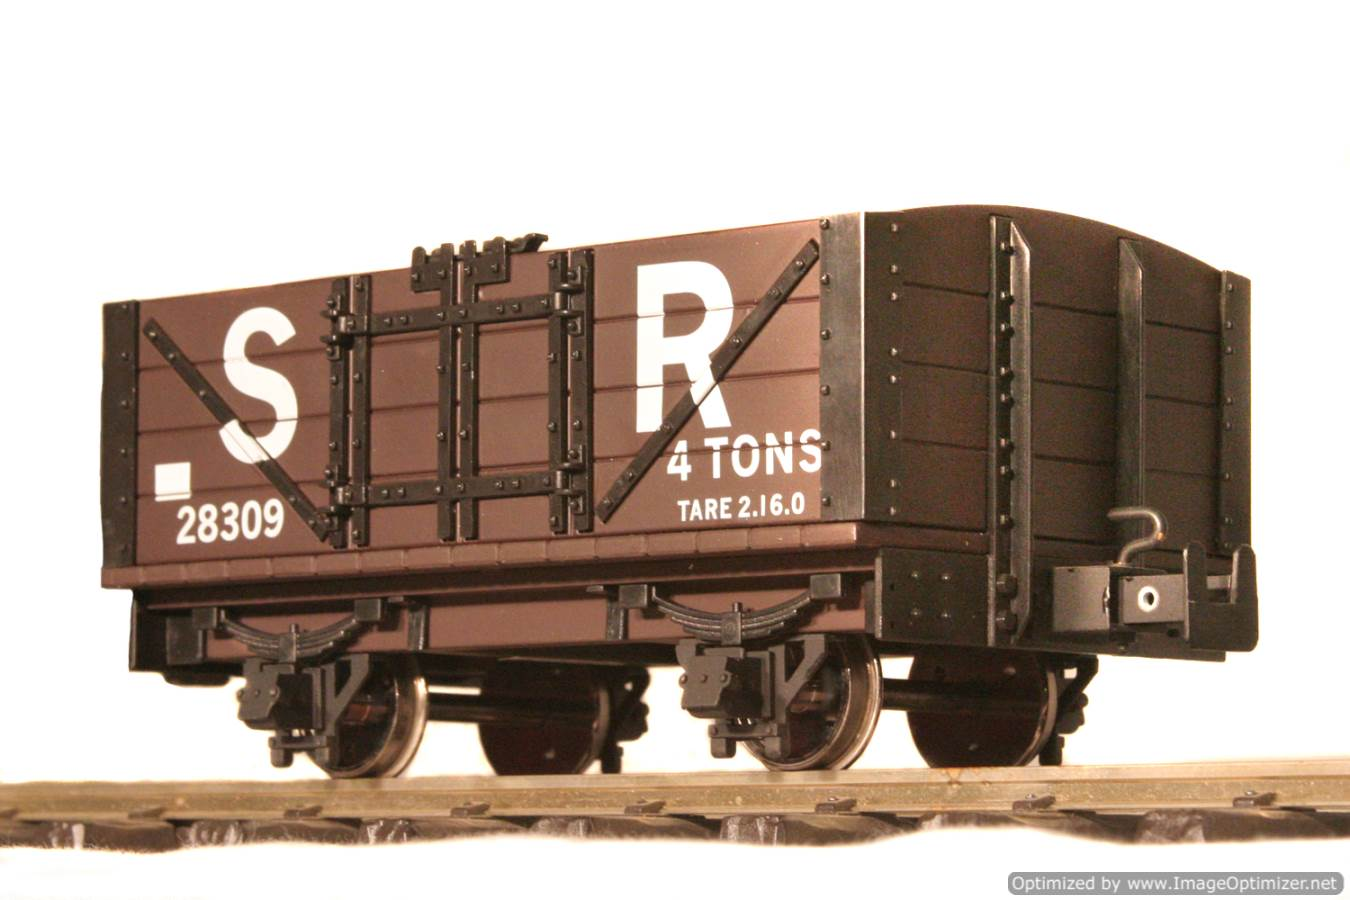 test L & B Open Wagon for sale 02 Optimized-1